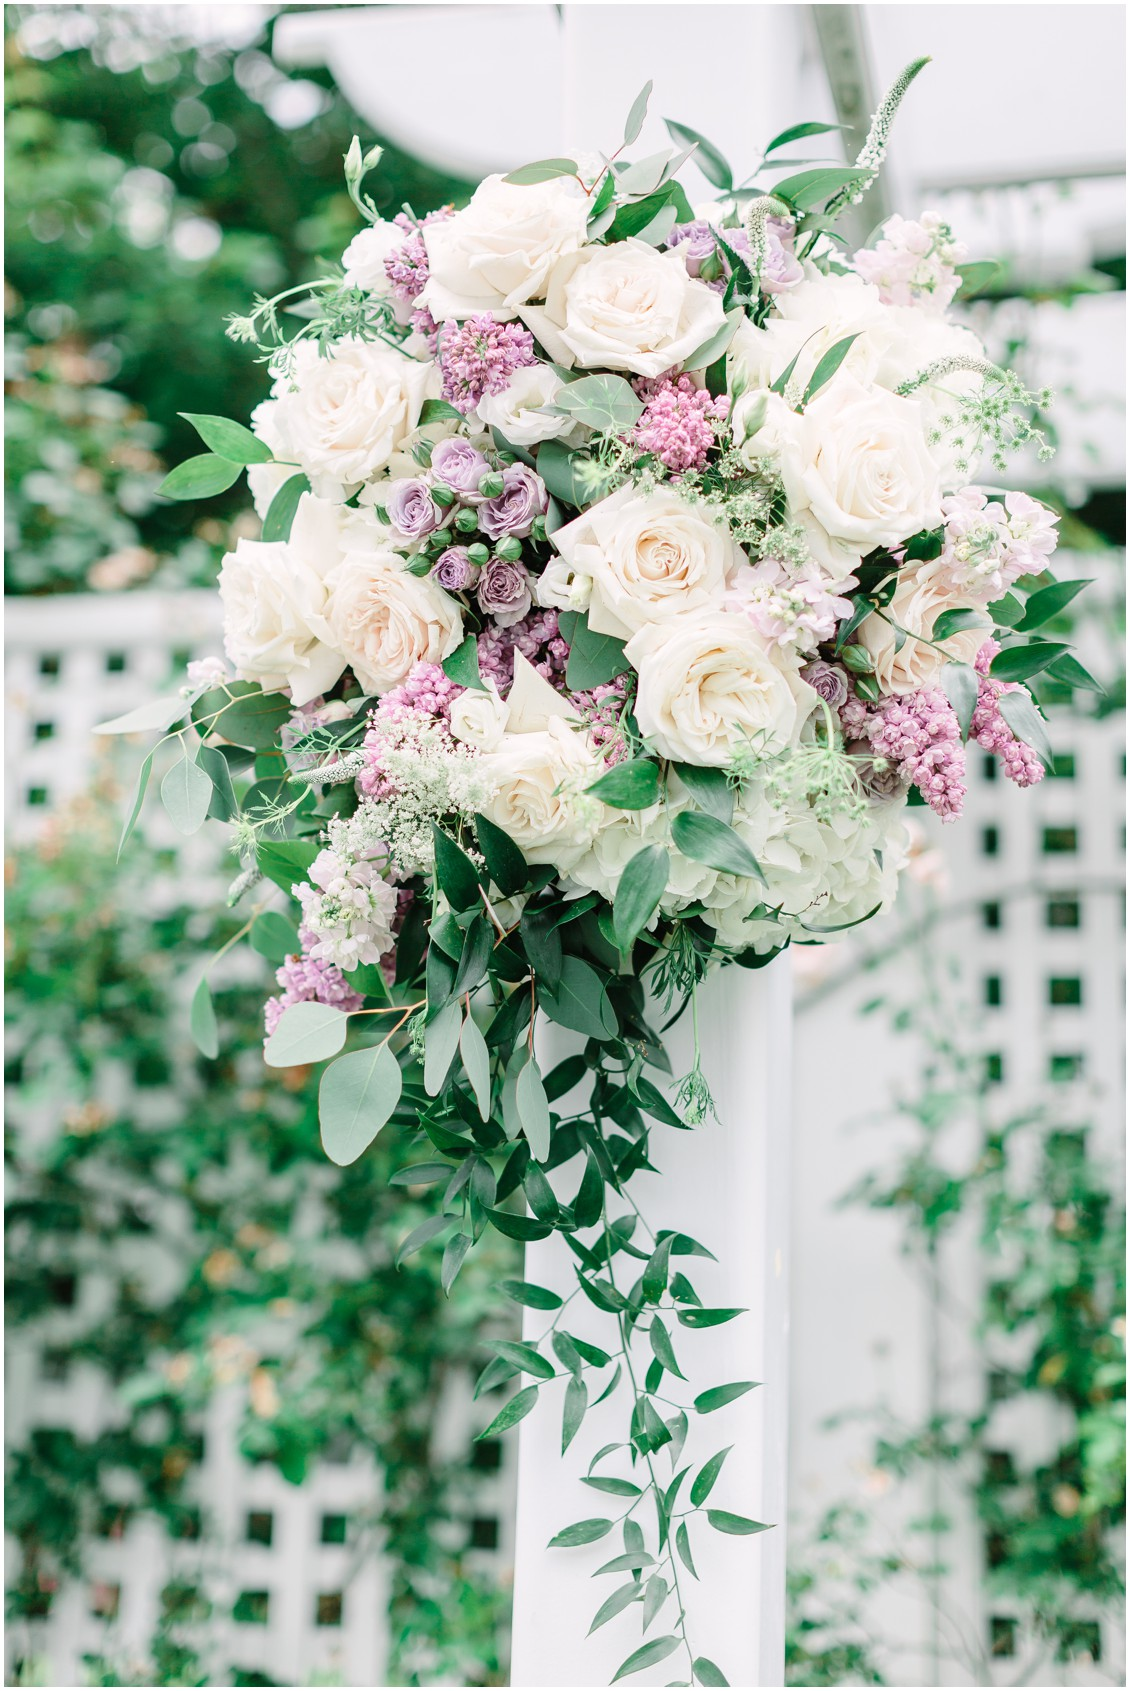 Crimson & Clover floral arrangement | White roses and purple flowers | Chesapeake Bay Beach Club | My Eastern Shore Wedding